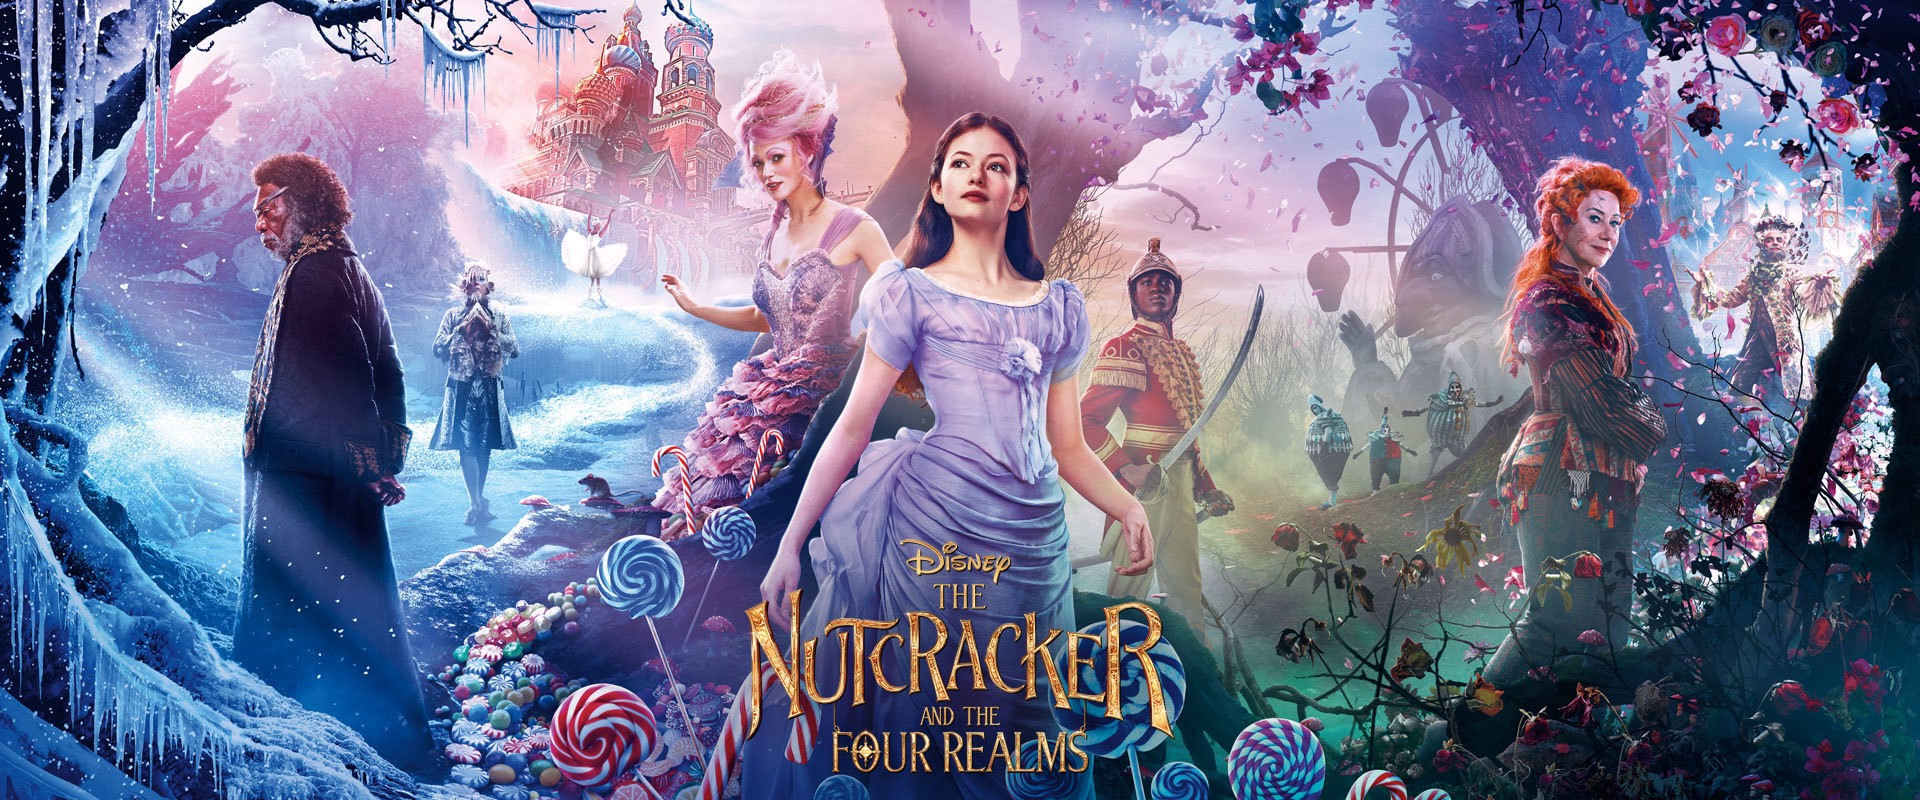 Film Review Disney S The Nutcracker And The Four Realms 2018 By Charing Kam One Reel At A Time Medium